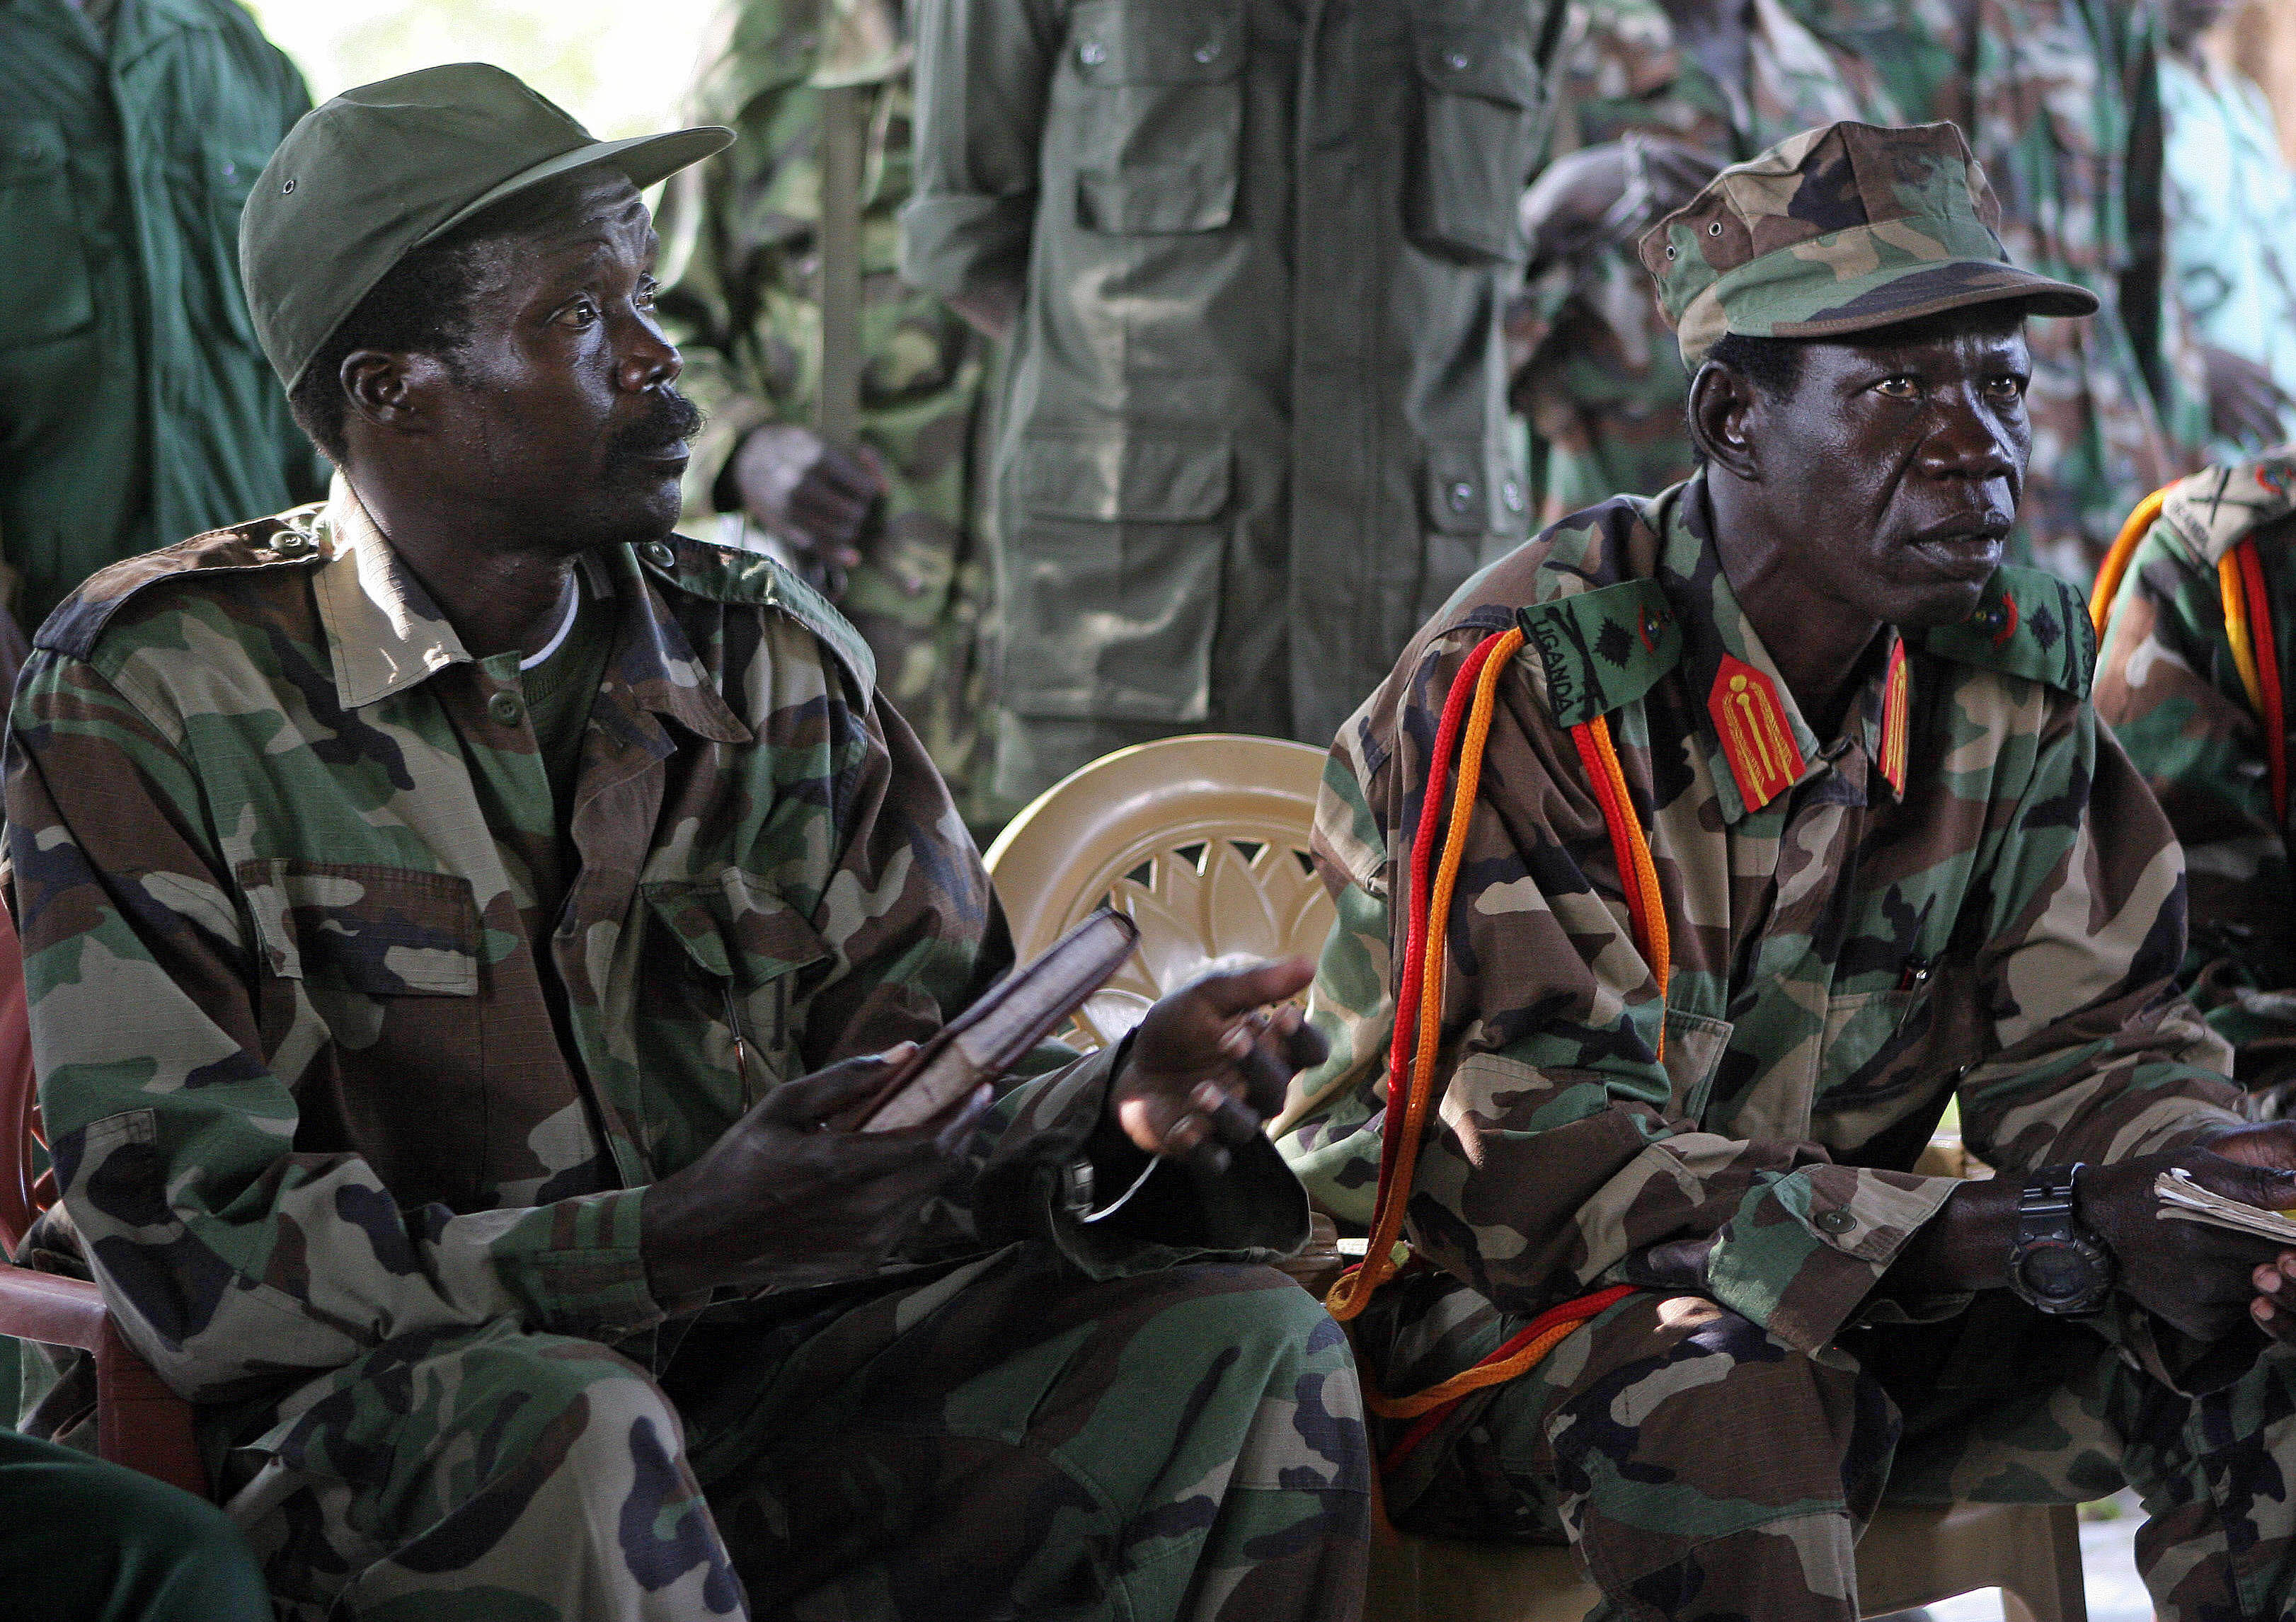 RealClearWorld Op-ed: How to Crumble Kony's Rebel Group From Within